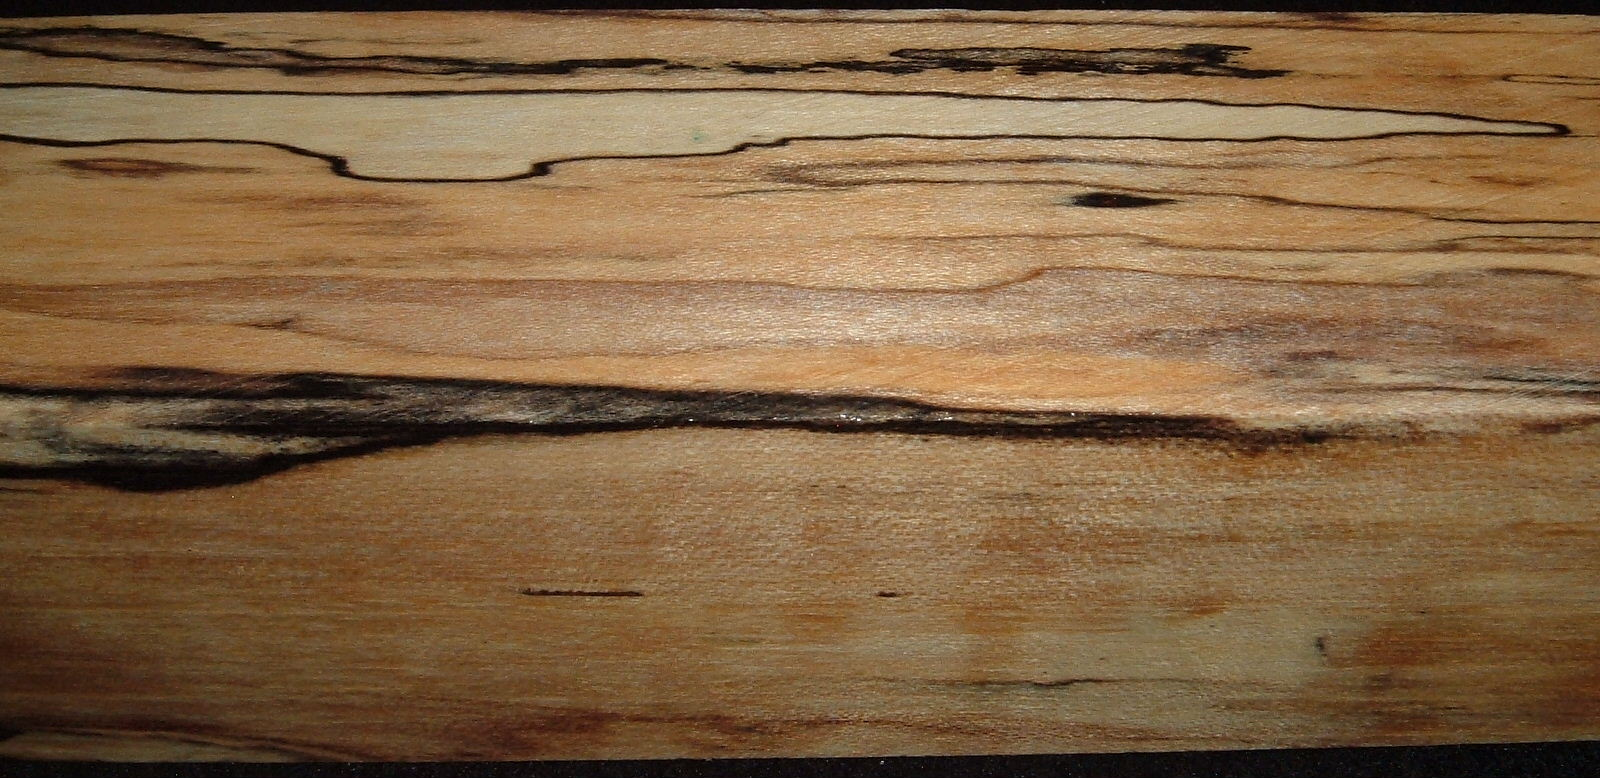 Z314, 1-5/8x1-5/8x6-1/4 ,Clear, Spalted Maple Dyed Stabilized, wood turning block